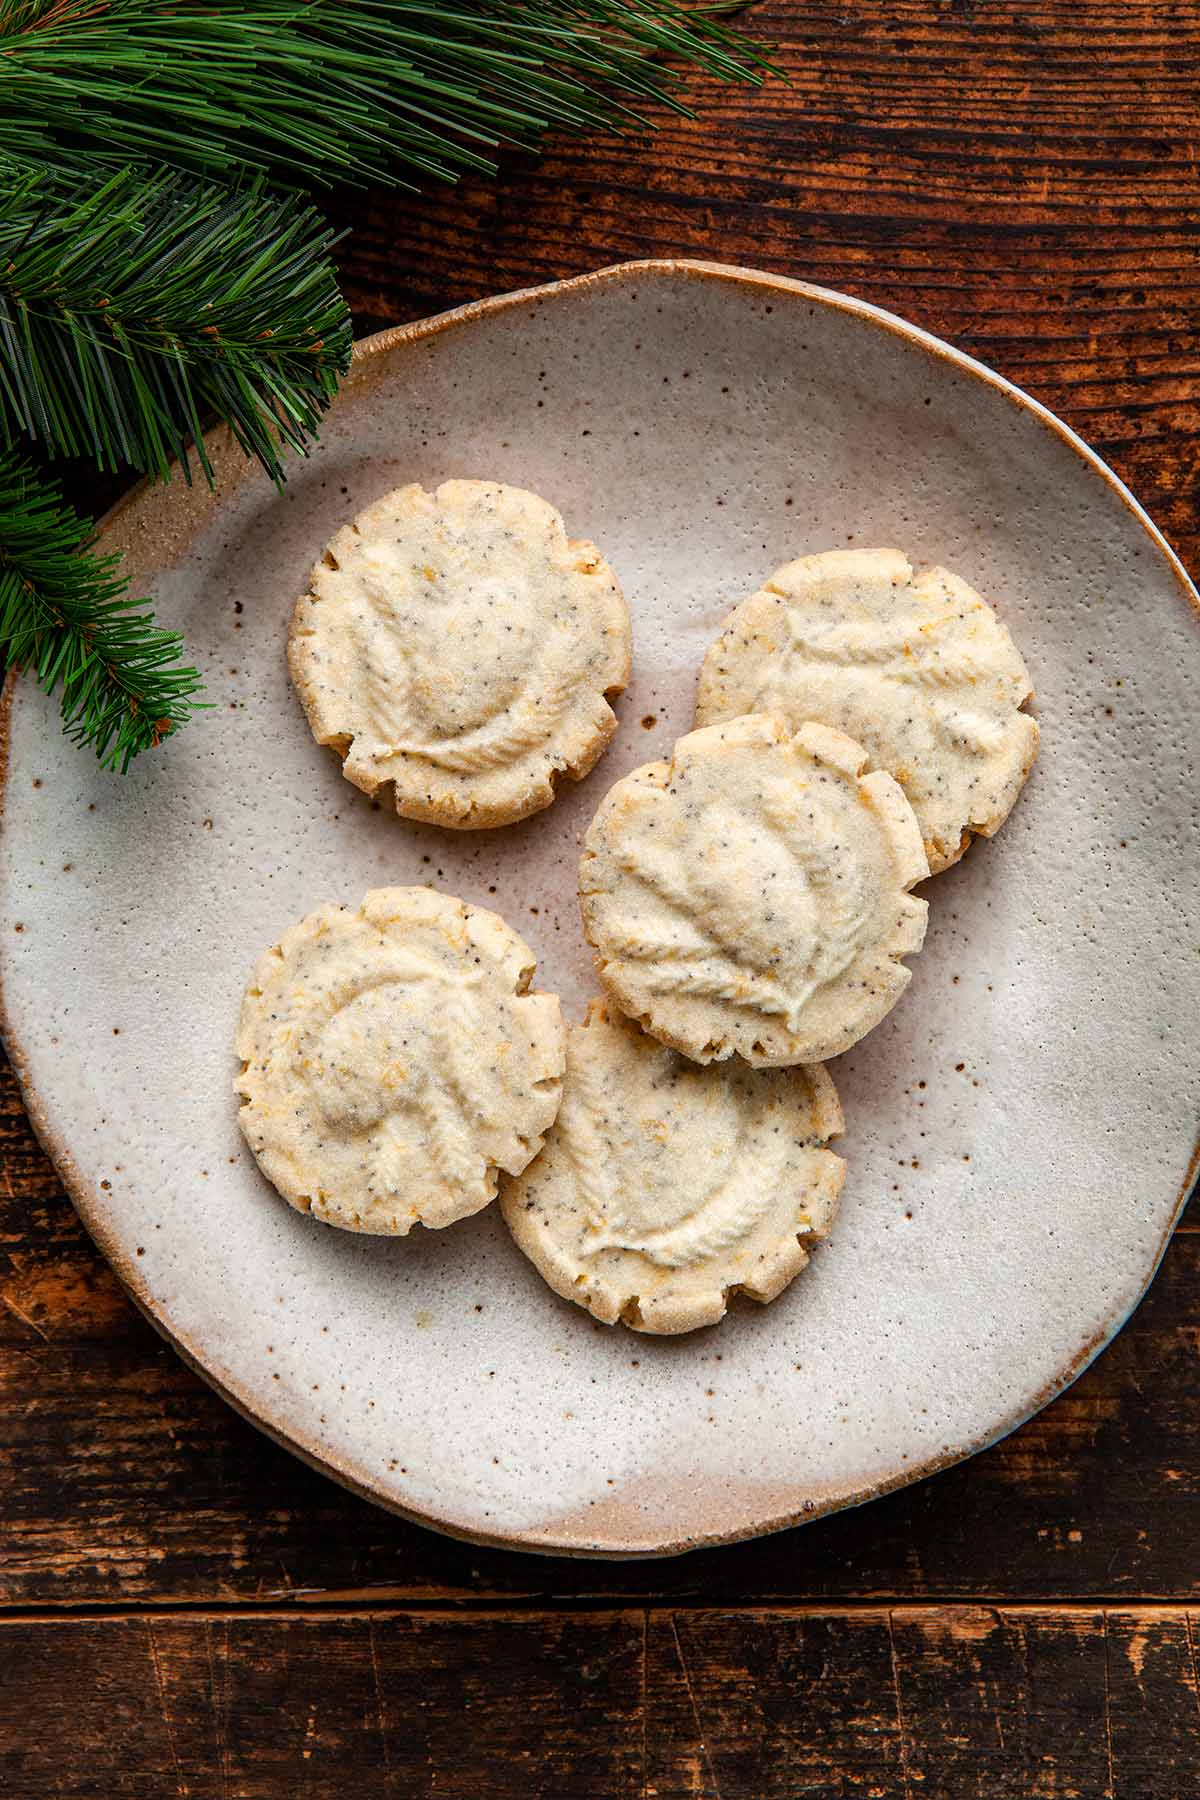 A plate of five lemon poppy seed shortbread cookies surrounded by evergreen branches.